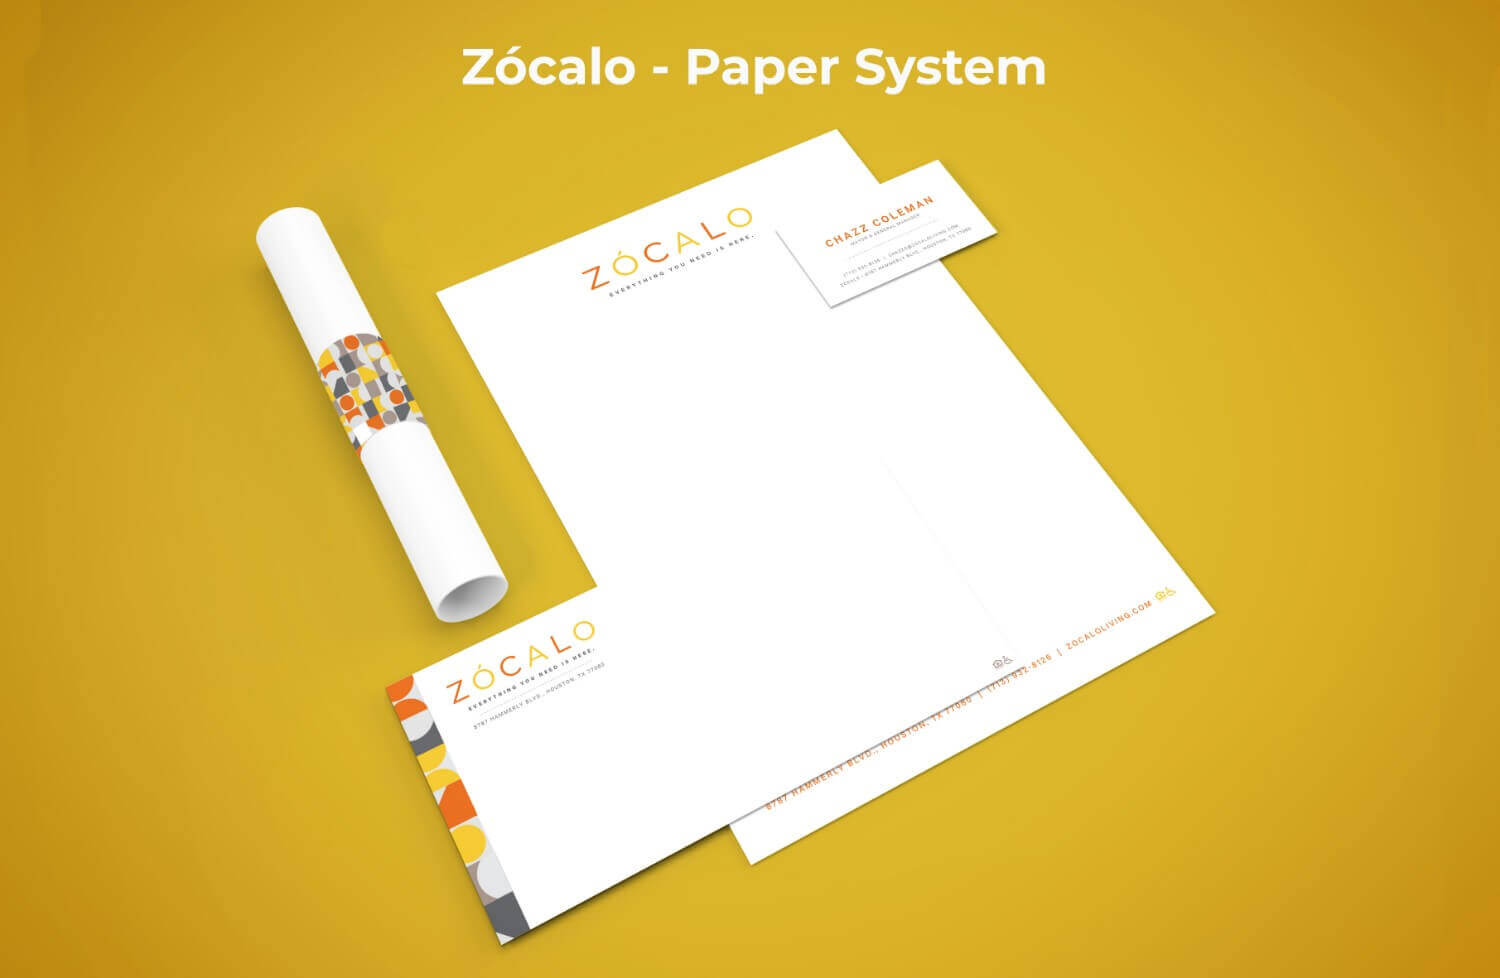 ZCLO-PaperSystem